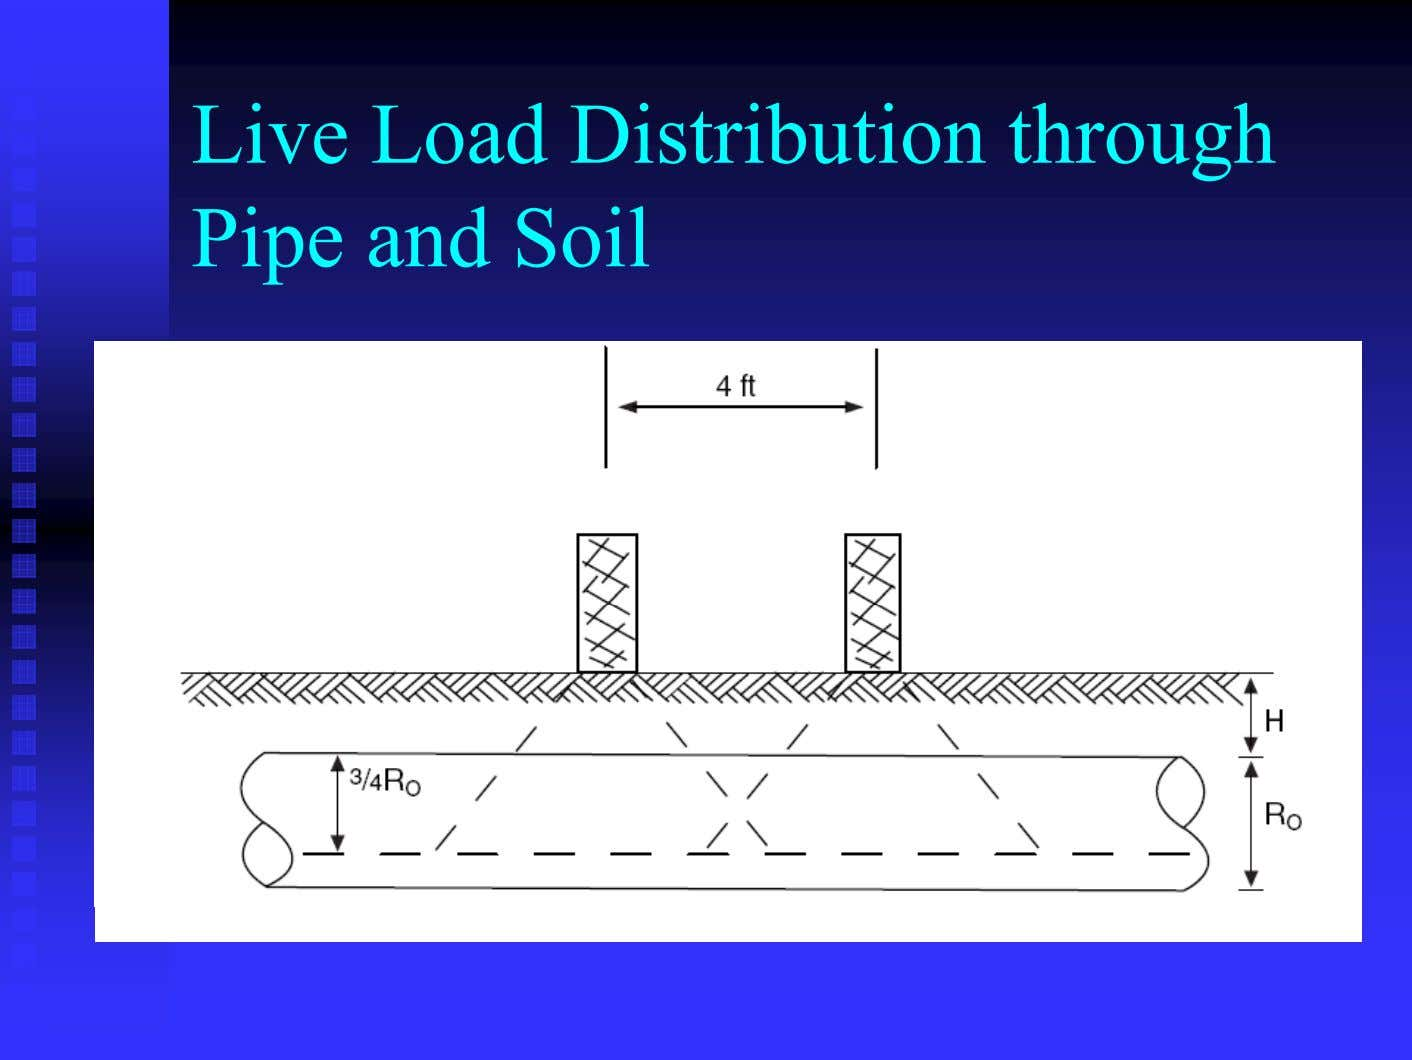 Live Load Distribution through Pipe and Soil